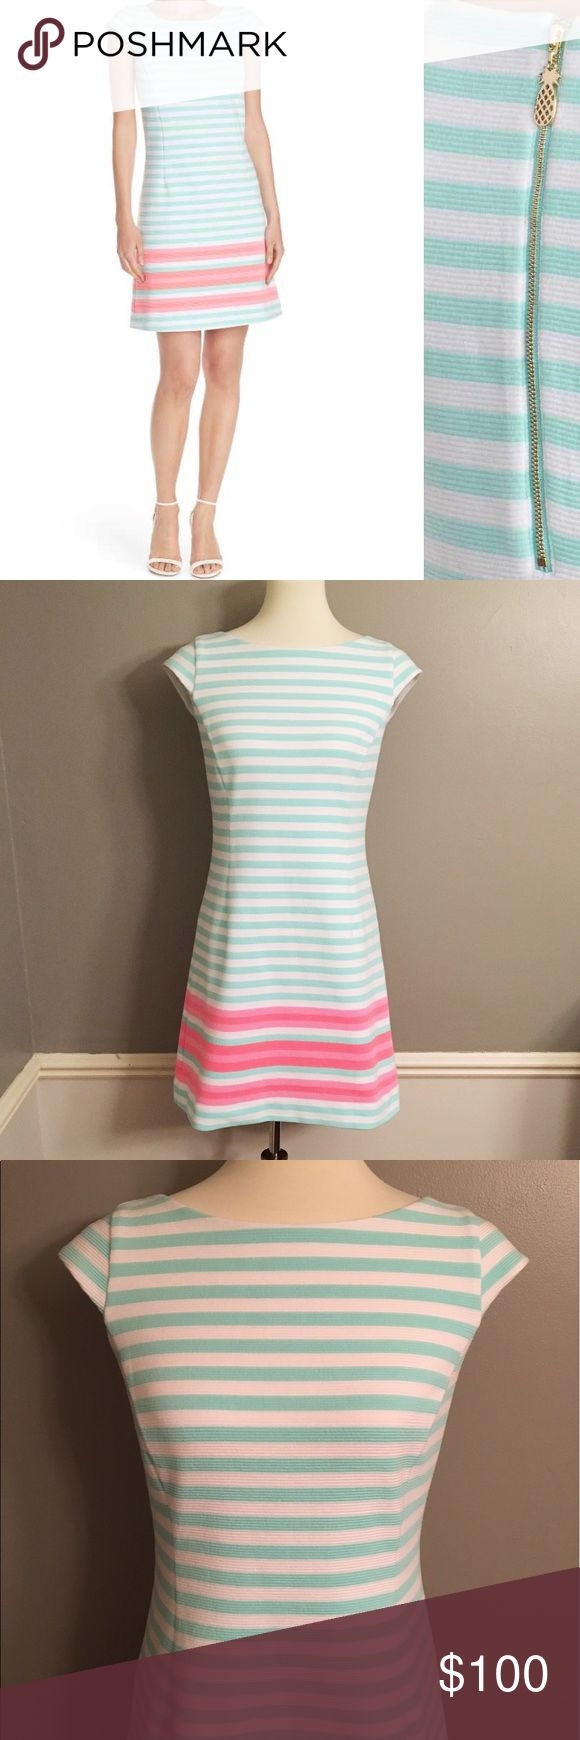 """Lilly Pulitzer Lana Dress 👗 size small EUC 🎀 Bust 36"""" 🎀 Waist 30"""" 🎀 Length 33""""                                                                          Sold out online!! All 5-star reviews on Lilly Pulitzer website!! Lilly Pulitzer Dresses"""